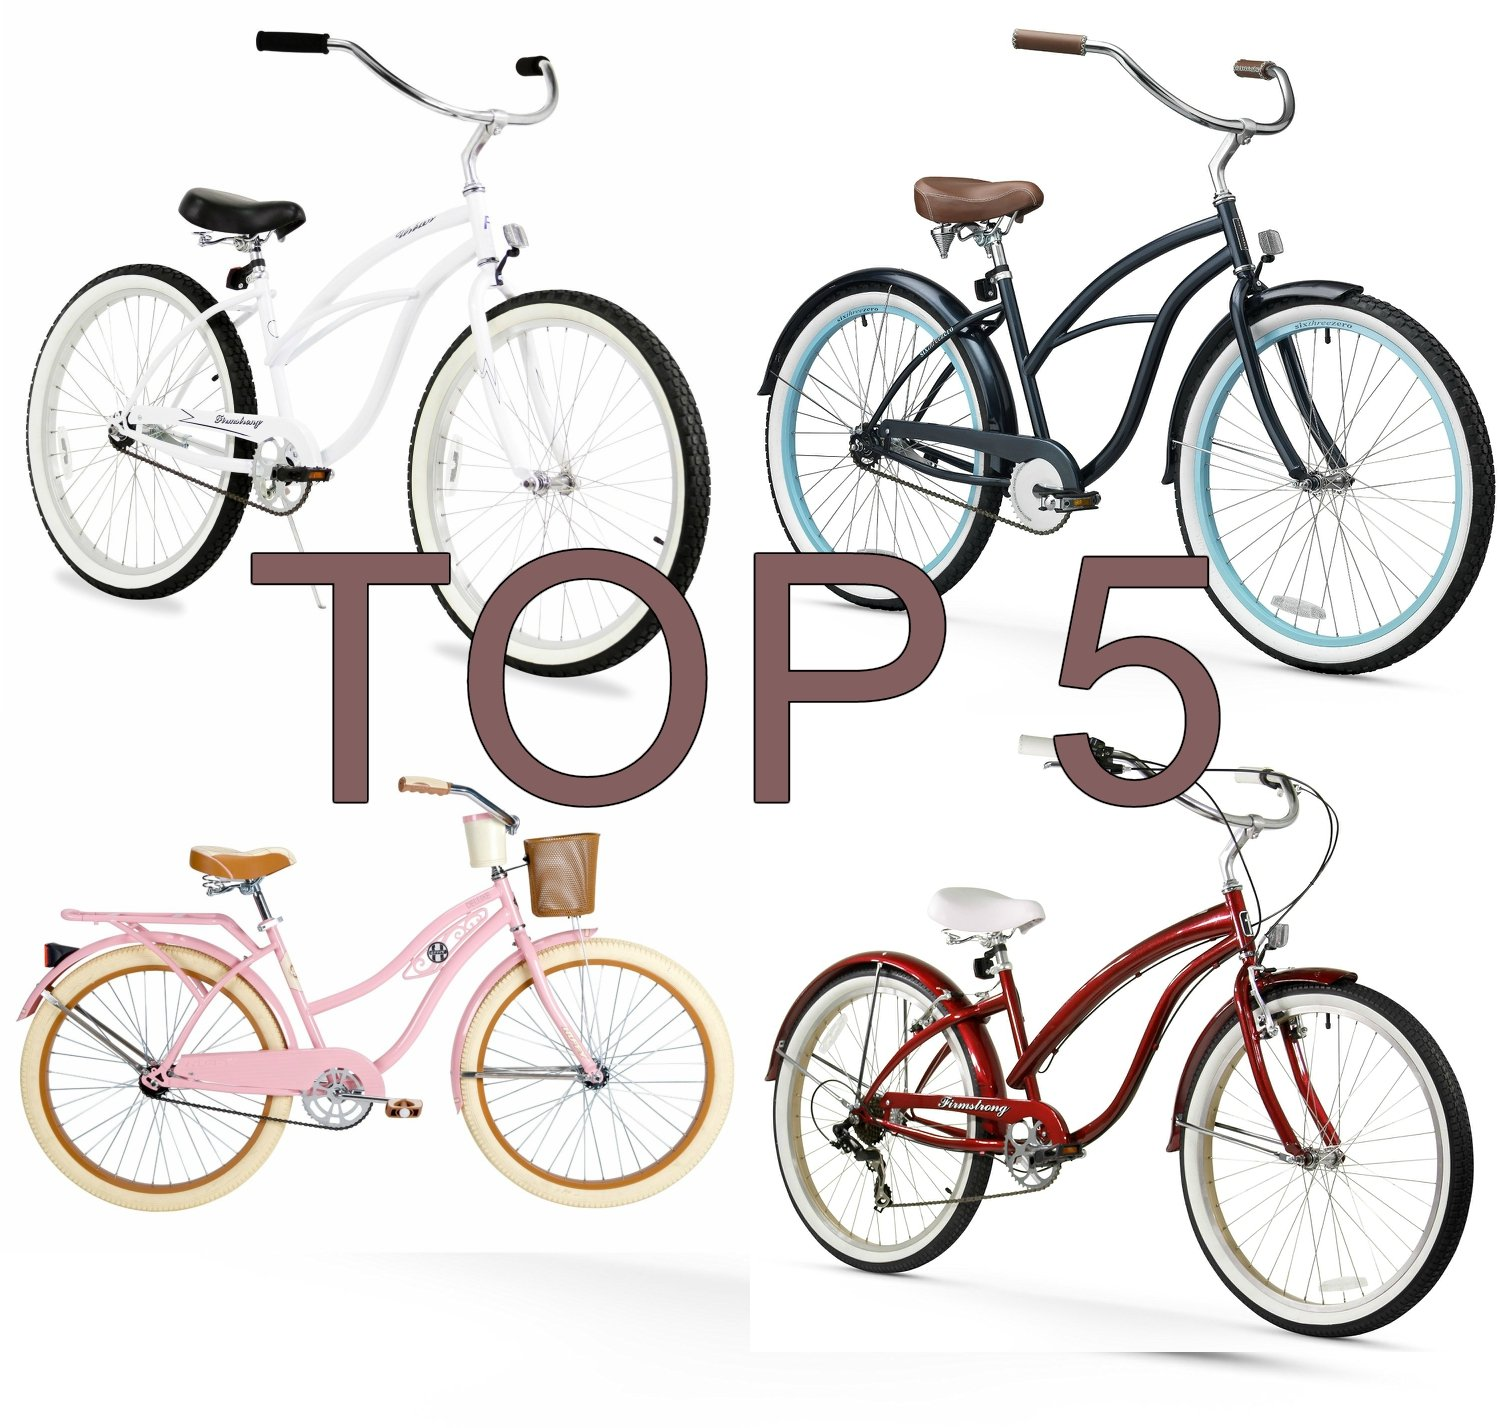 Top 5 Best Vintage Style Bicycles For Women